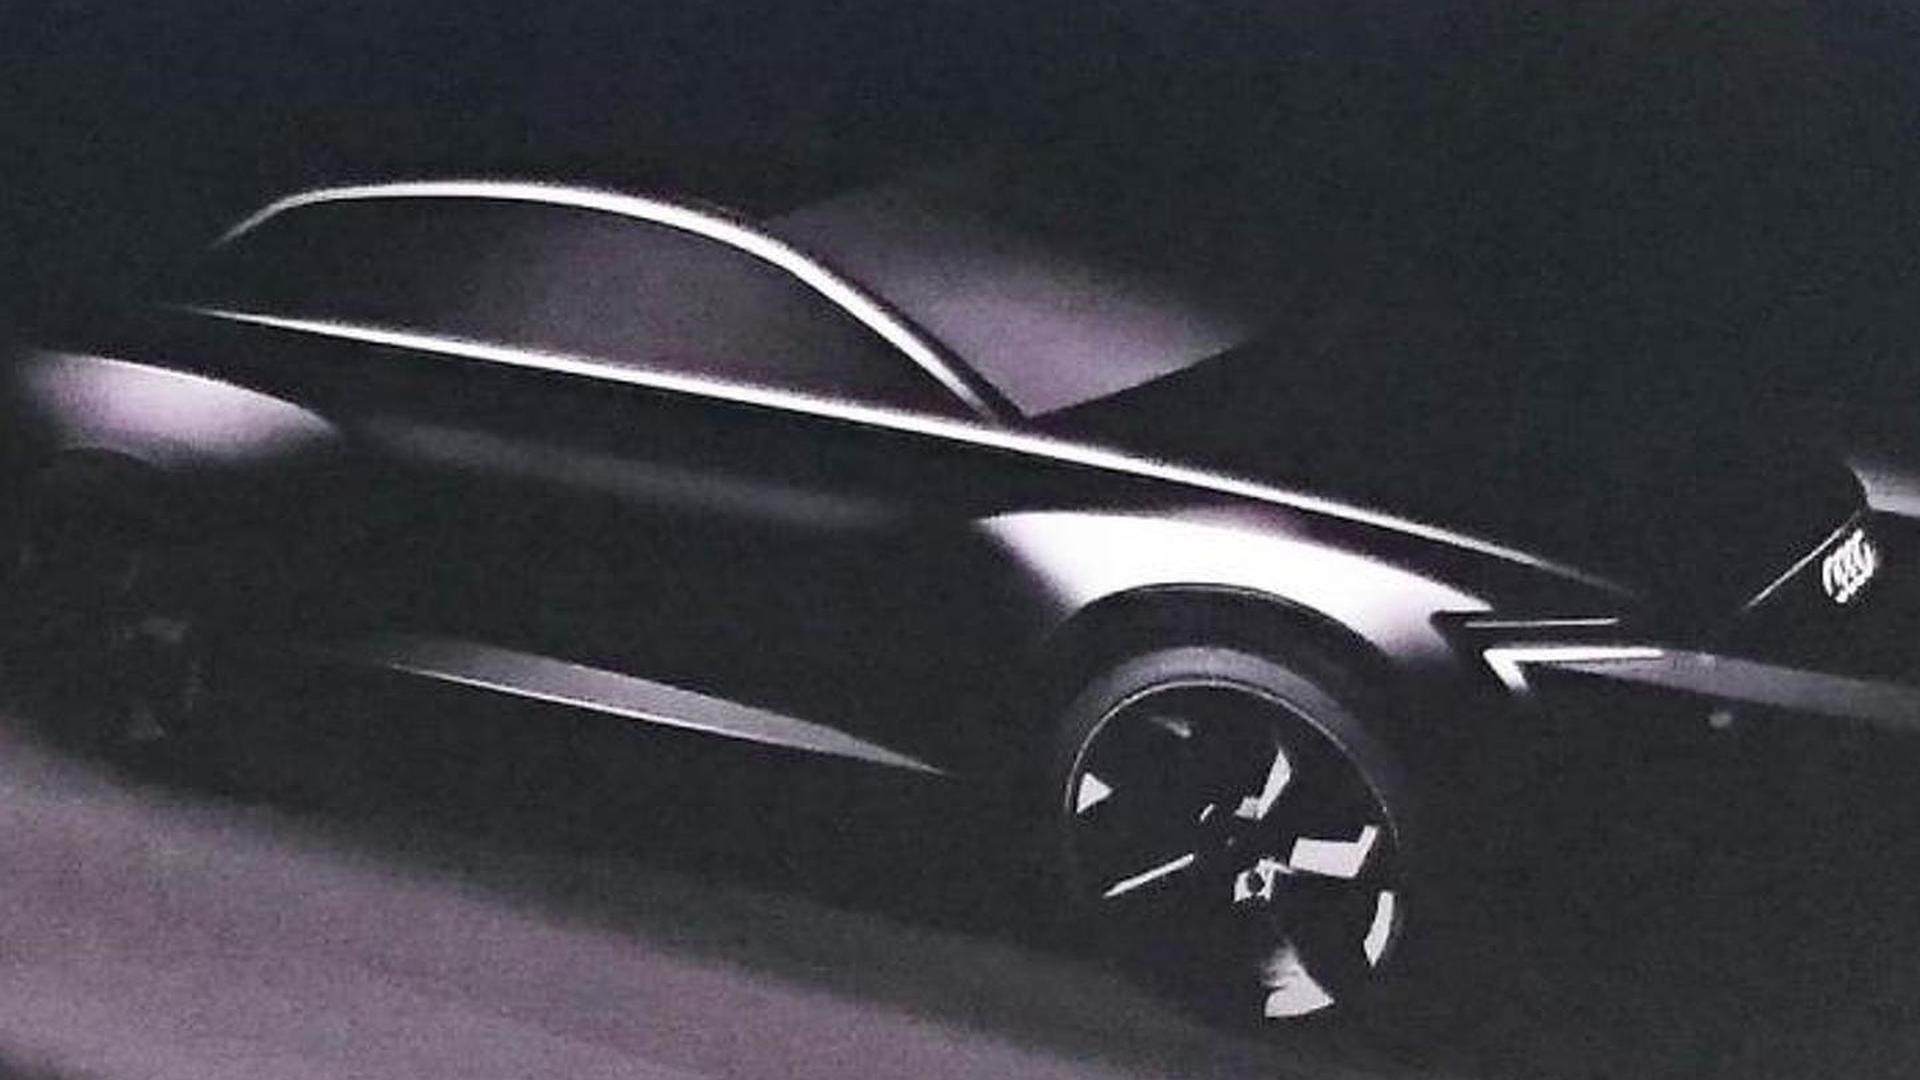 All-electric Audi Q6 teased, Q8 flagship reconfirmed